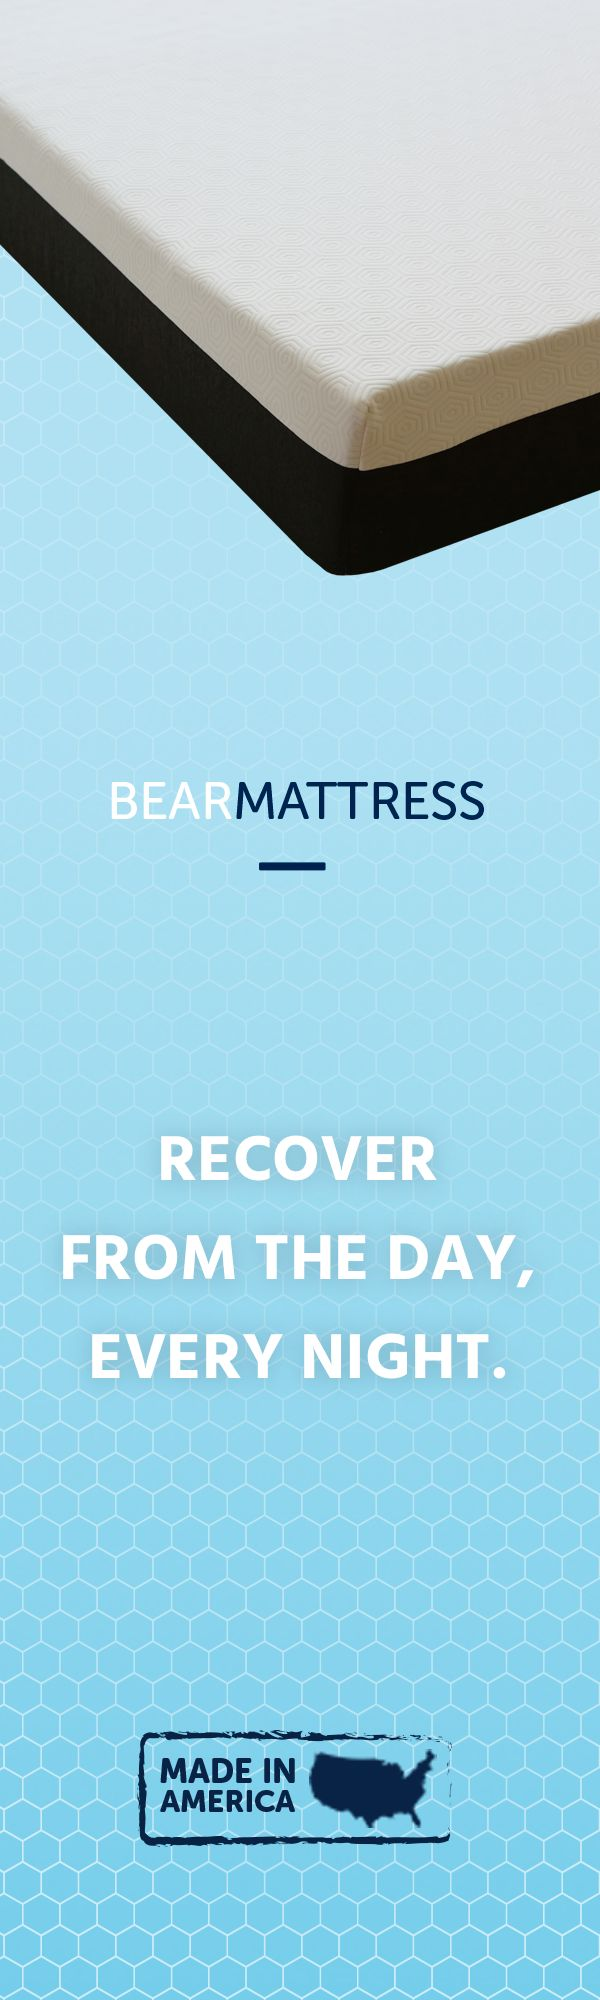 Bear Mattress Is Engineered To Offer A More Restorative Nights Sleep So You Can Be